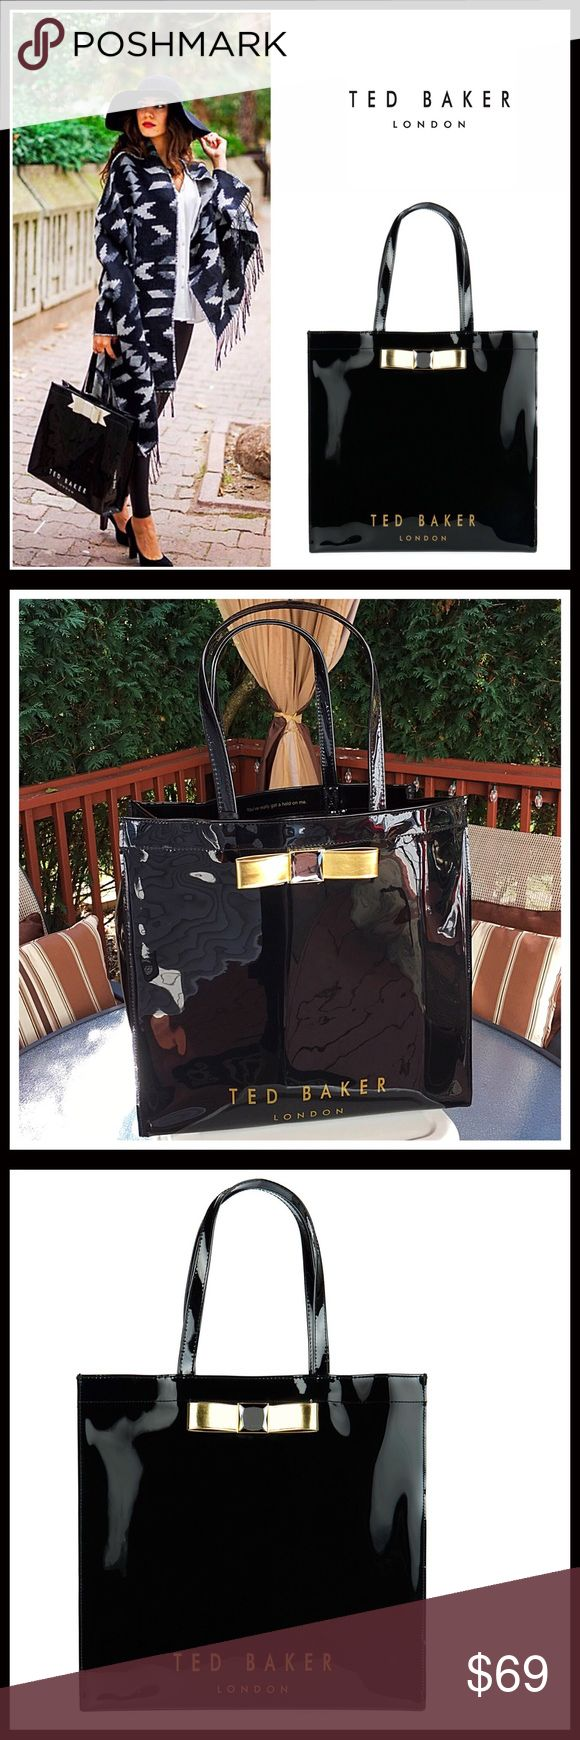 """⭐️⭐️ TED BAKER LONDON PATENT BOW TOTE BAG TED BAKER LONDON PATENT BOW TOTE BAG  SIZING- 14.5"""" W x 14"""" H x 3.5"""" D NEW W/TAGS COLOR- Black  * Open top * Smooth patent construction * Dual top handles' Approx 8"""" handle drop * Interior- 1 zip wall pocket * High quality & well made; MATERIAL- * Front exterior bow detail MATERIAL- PVC NO TRADES * BUNDLE DISCOUNTS * OFFERS CONSIDERED ITEM# SEARCH # mini - bucket shoulder saddle Ted Baker London Bags Totes"""